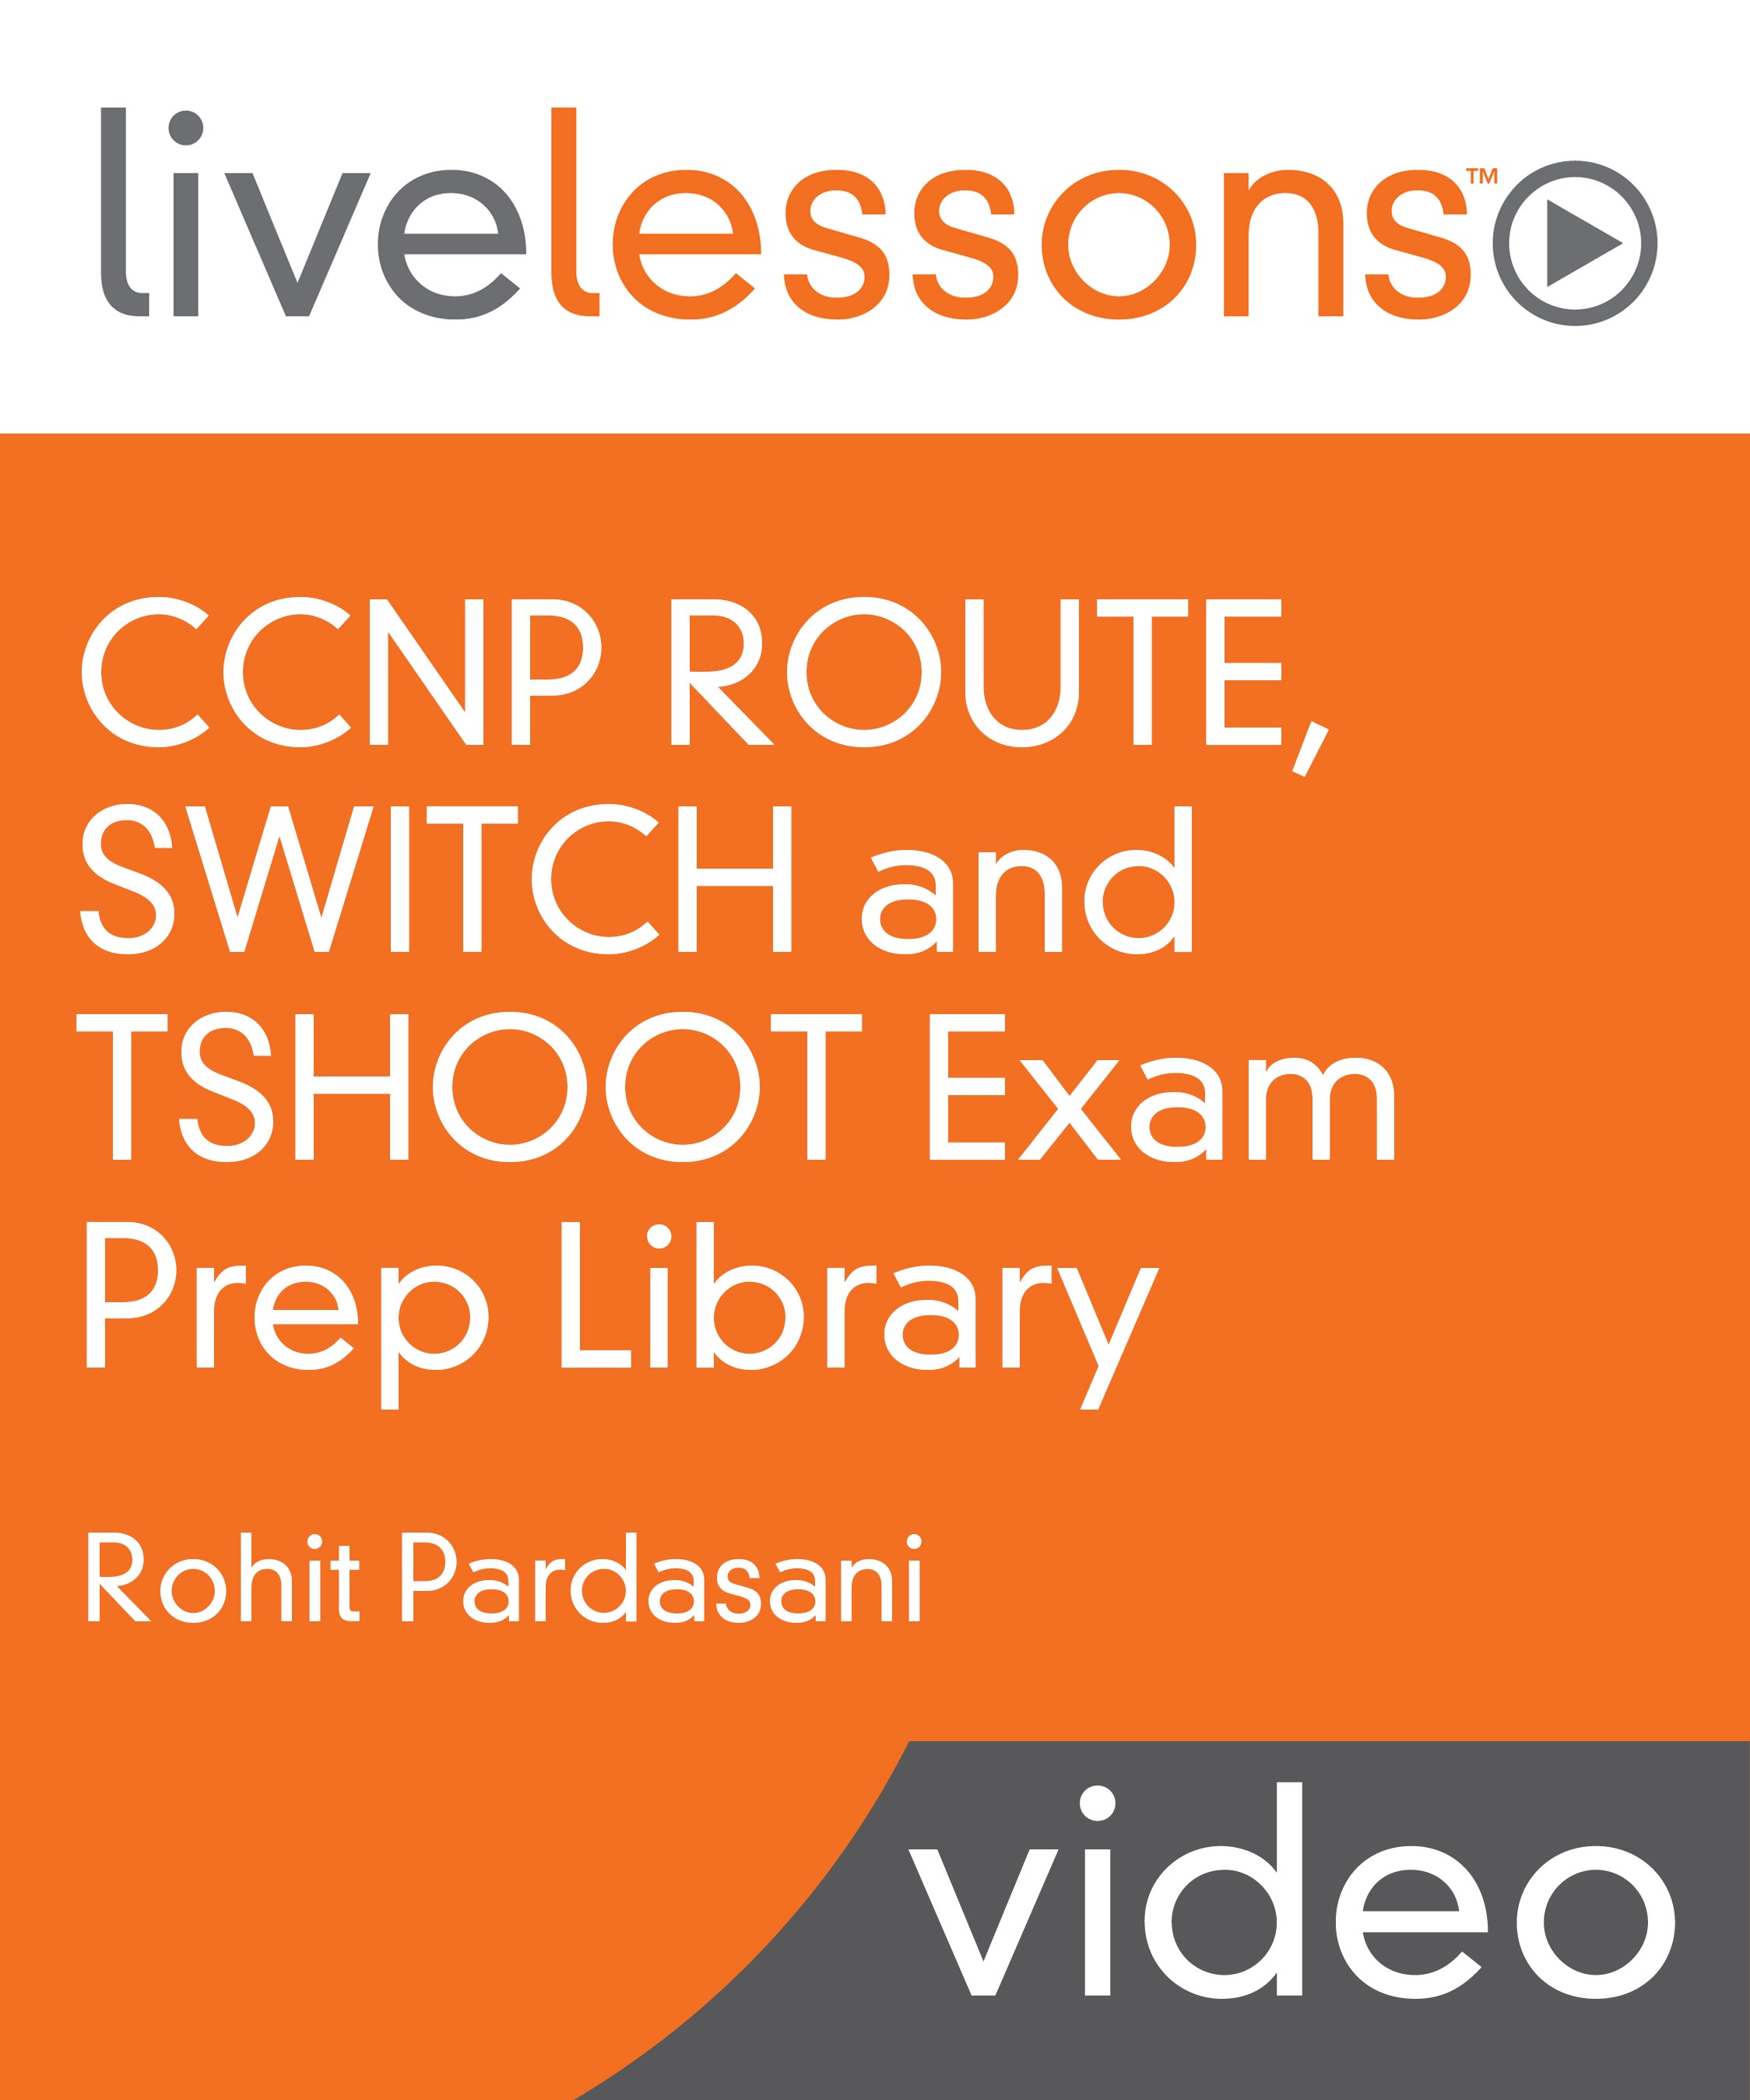 CCNP ROUTE, SWITCH and TSHOOT Exam Prep Library